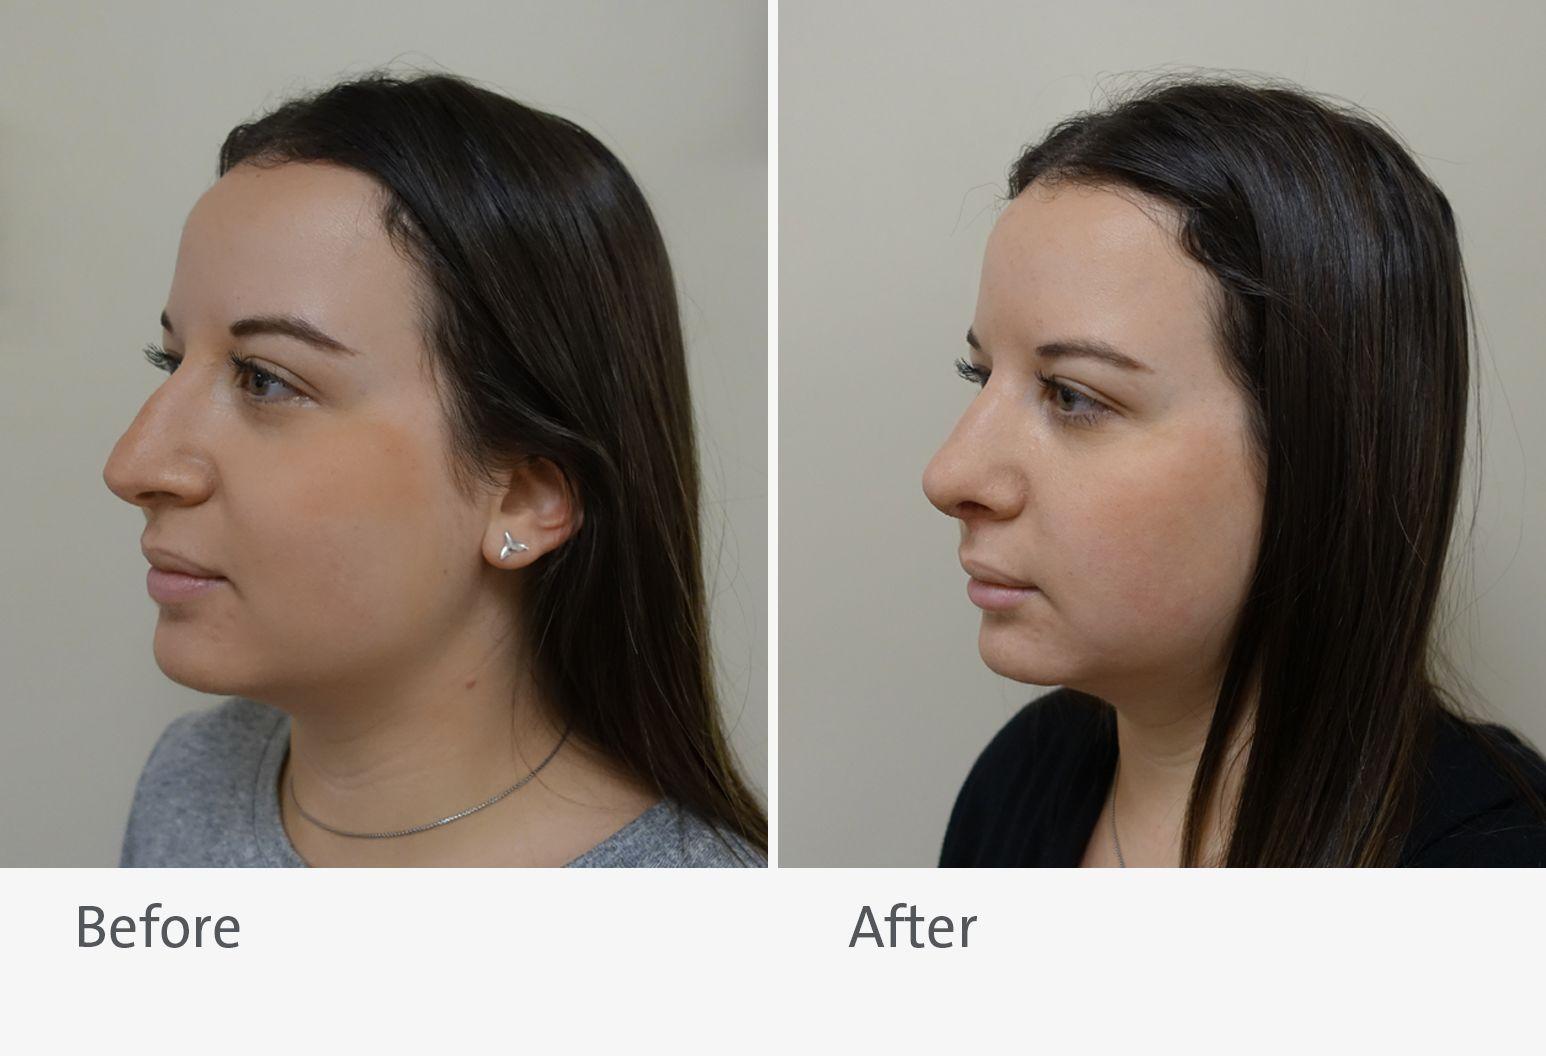 A patient is shown before and after rhinoplasty surgery. On the left is the patient before surgery and on the right is the patient after surgery.